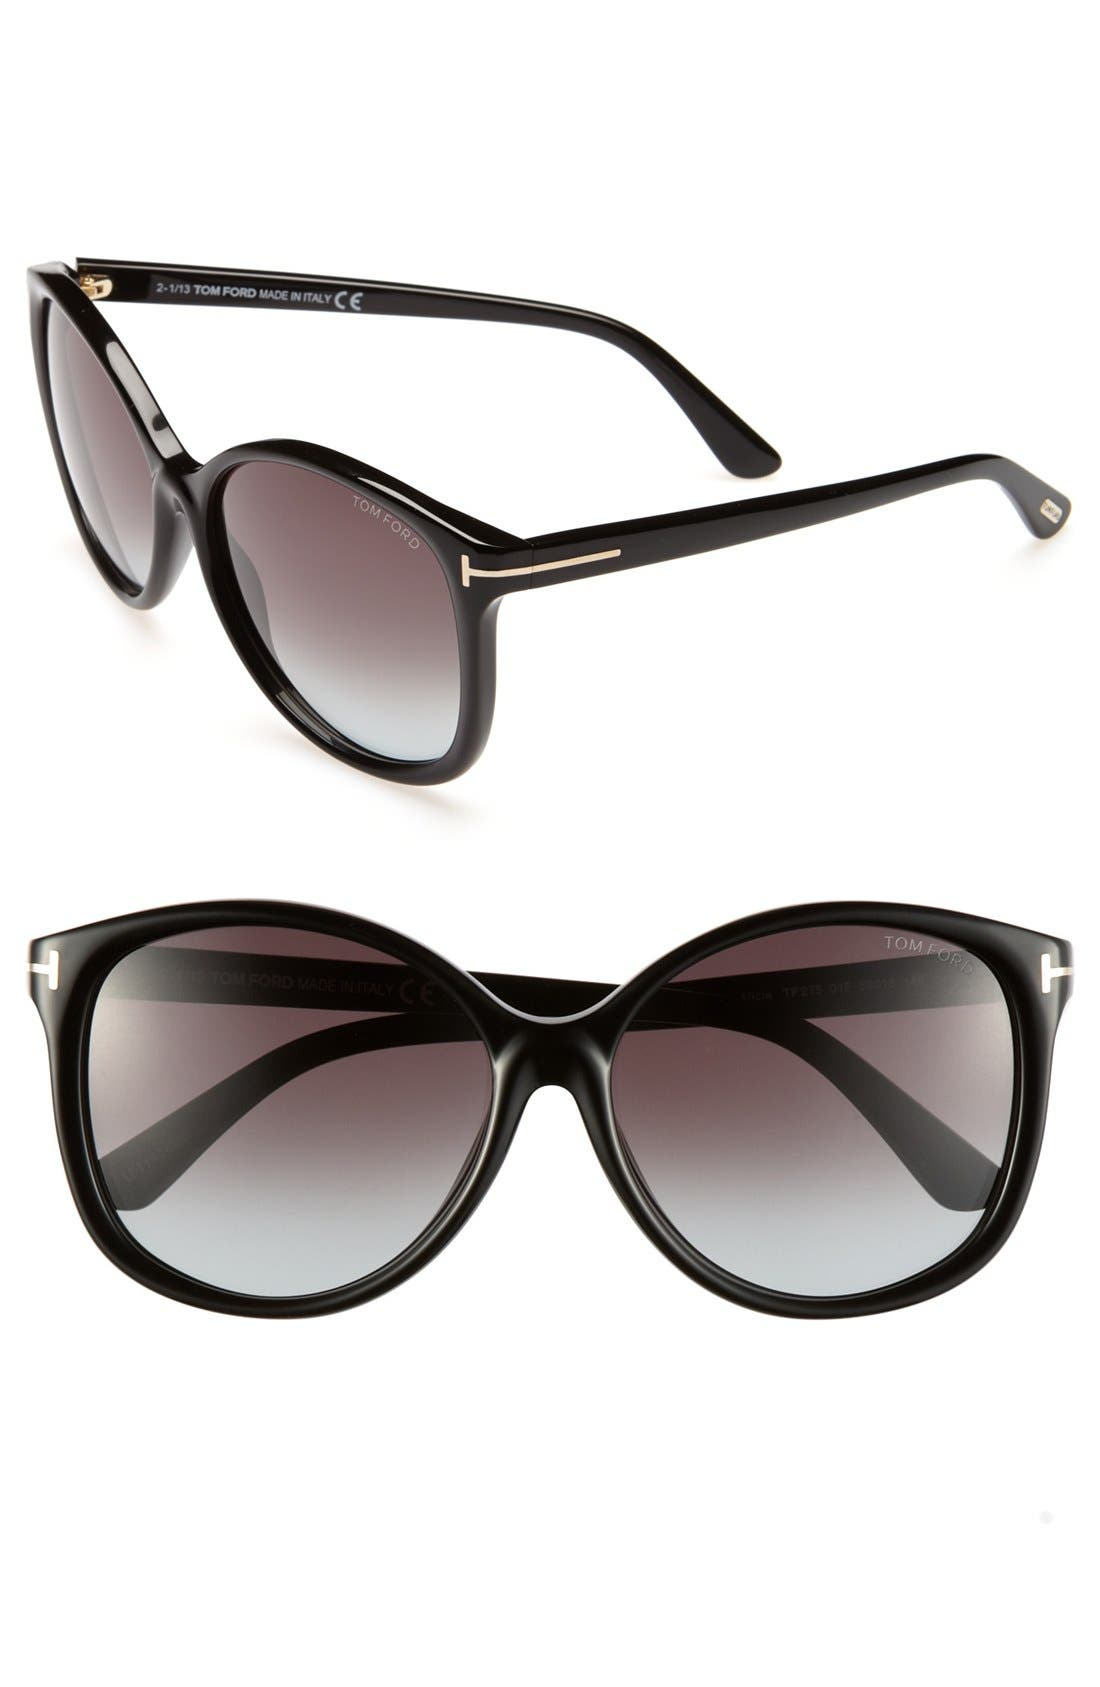 Alternate Image 1 Selected - Tom Ford 'Alicia' 59mm Sunglasses